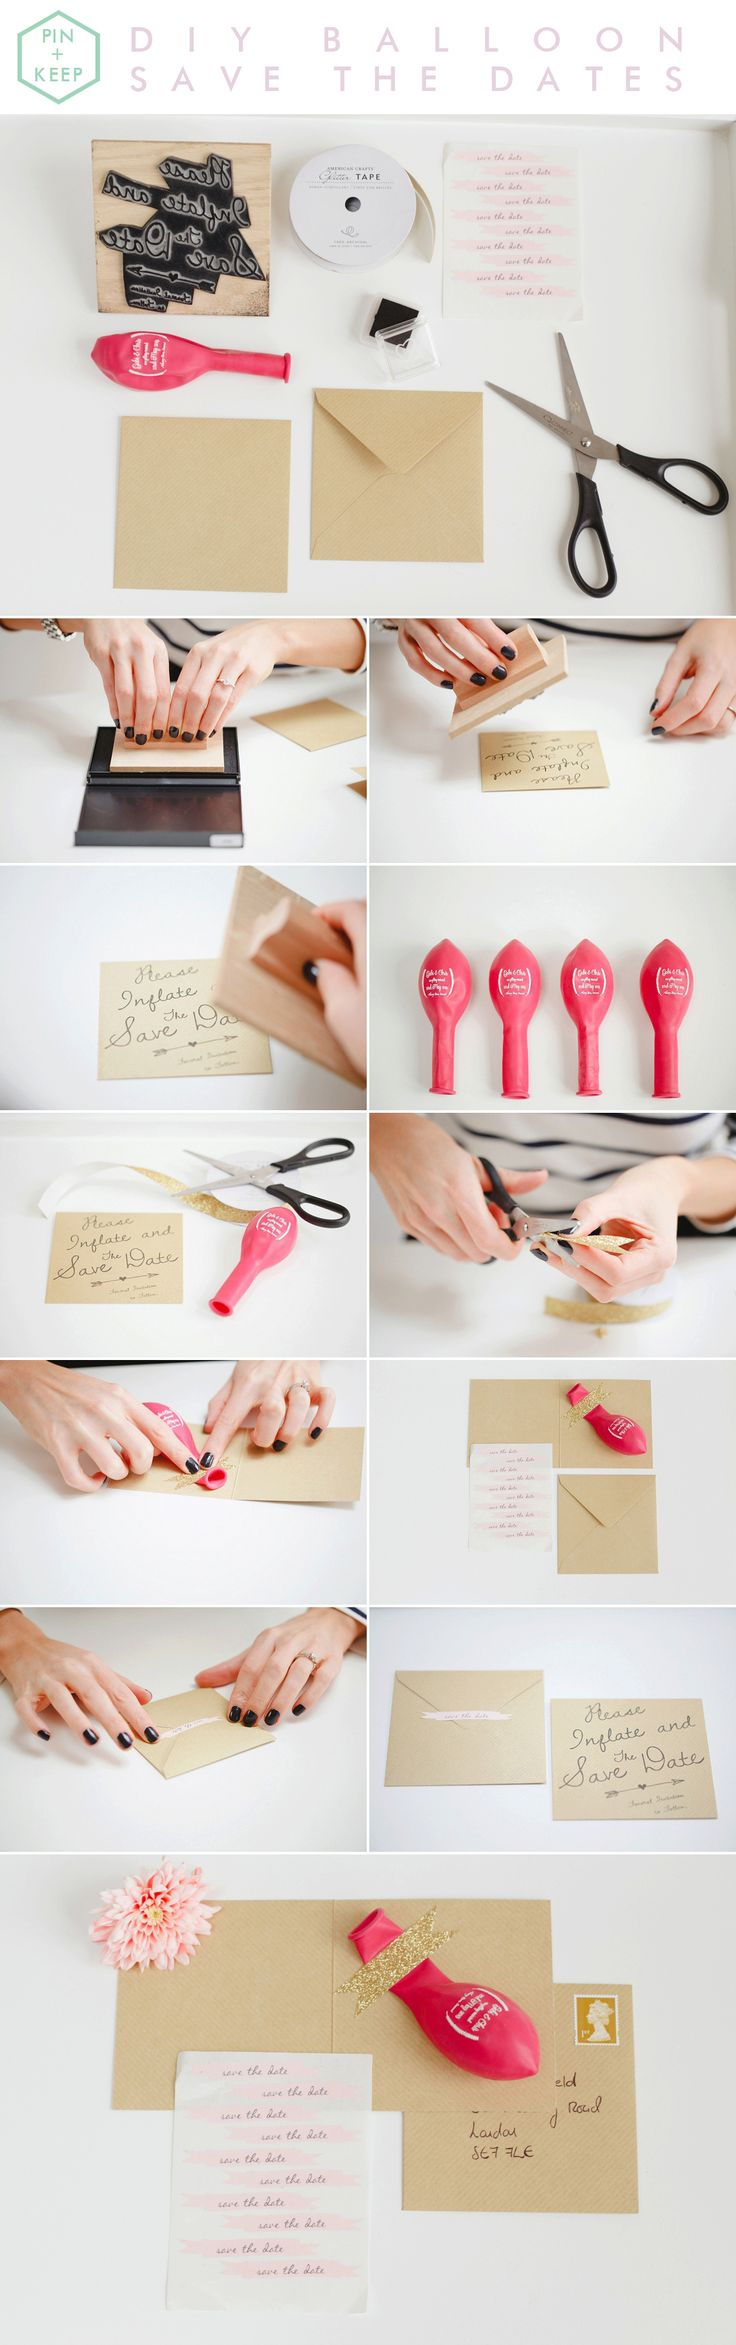 "Cute balloon save the date DIY via @blovedblog - ""Please inflate and save the date!"""